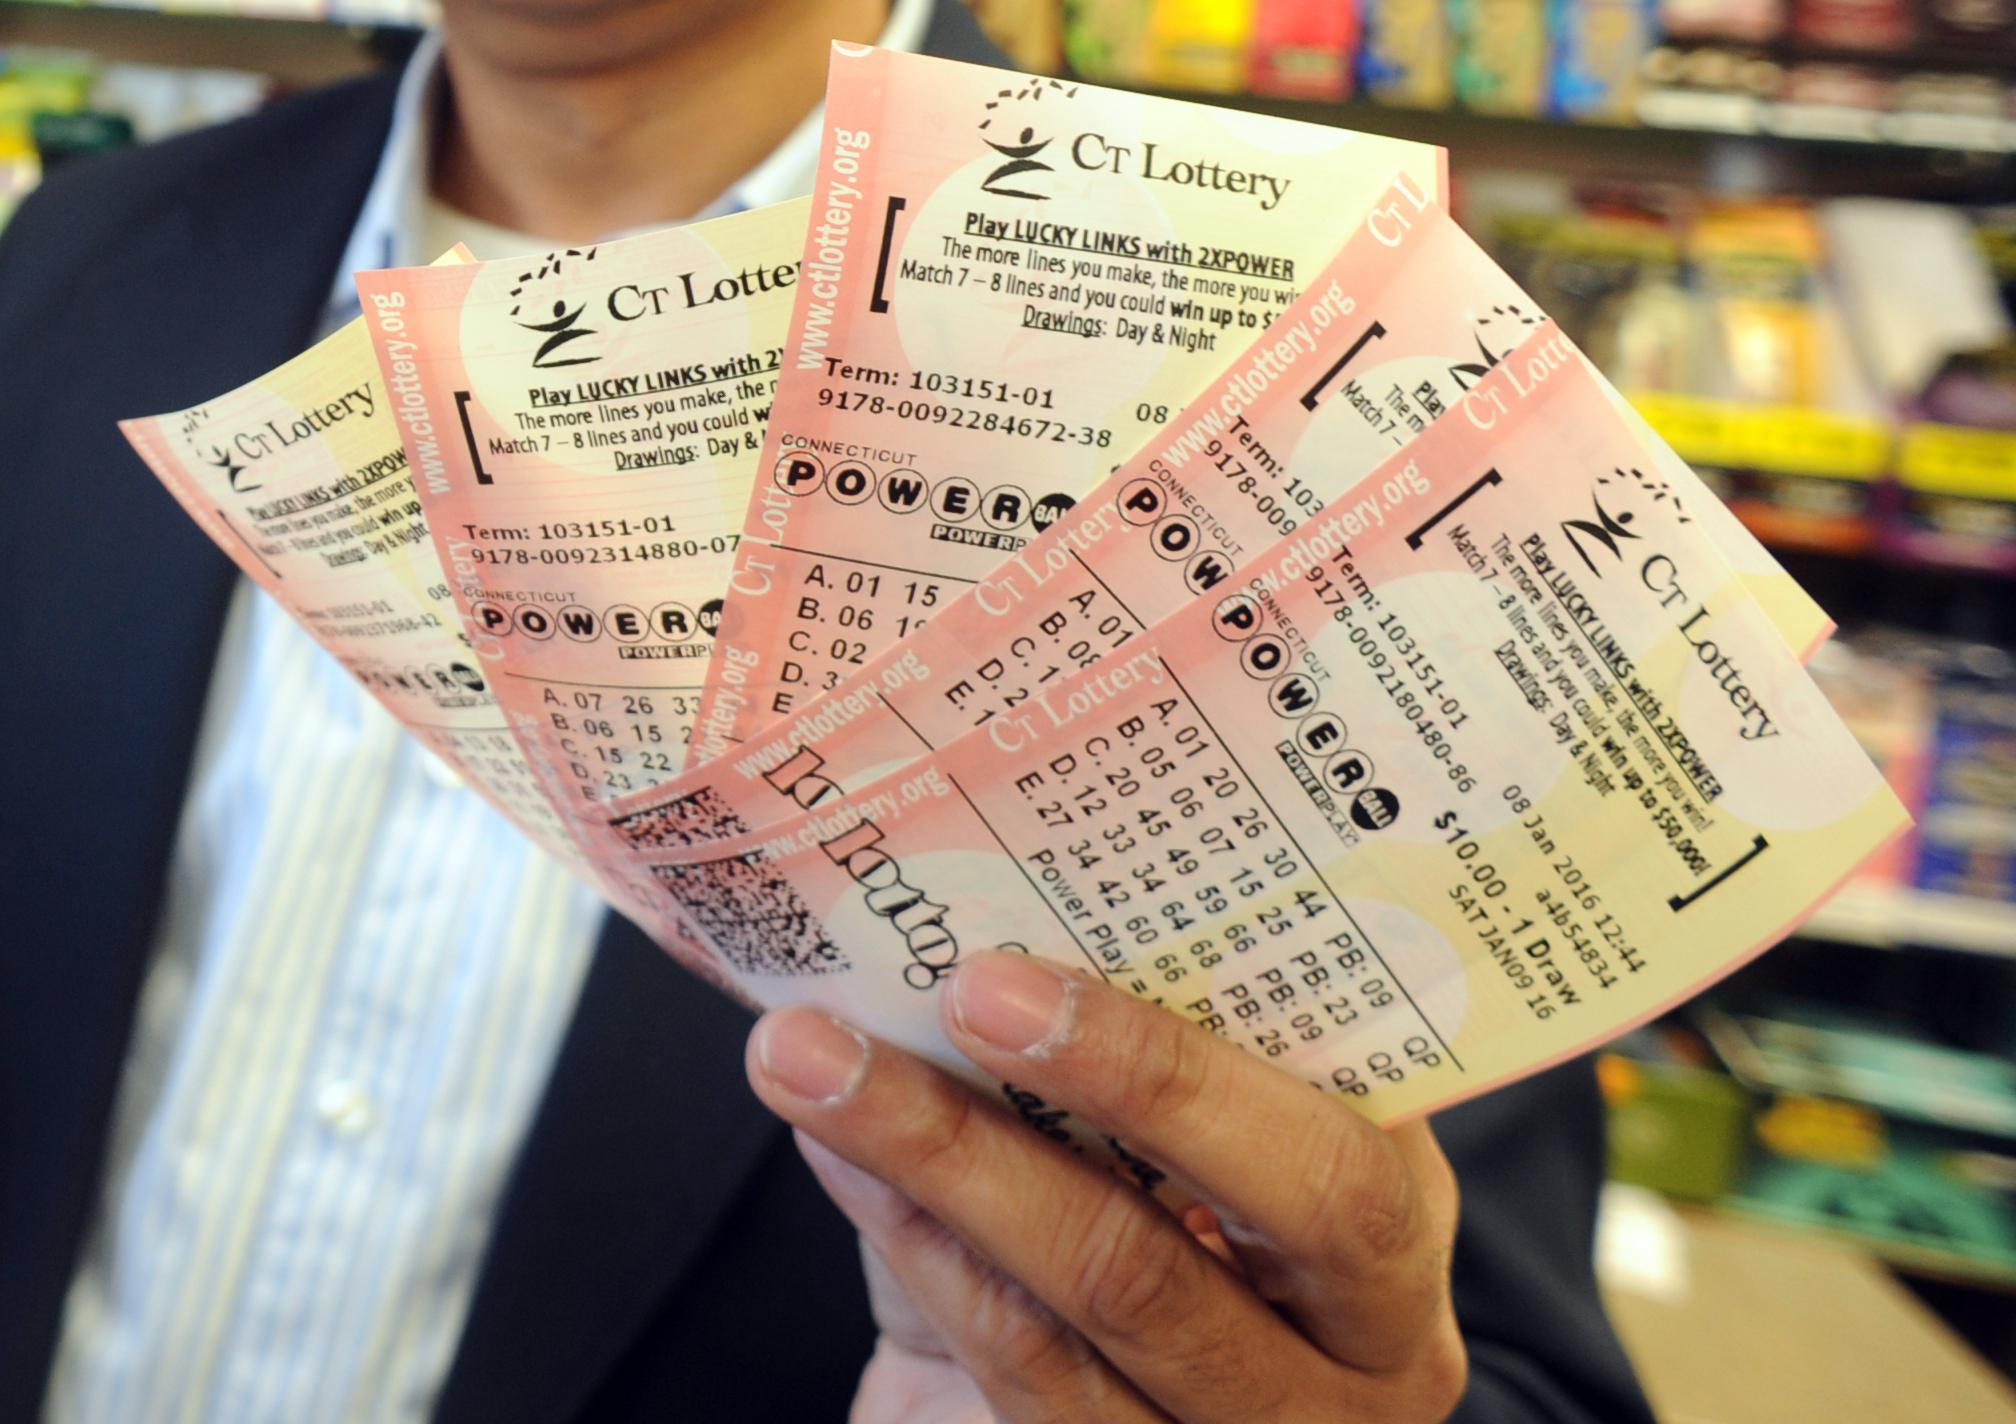 Powerball climbs to 10th biggest jackpot - Connecticut Post